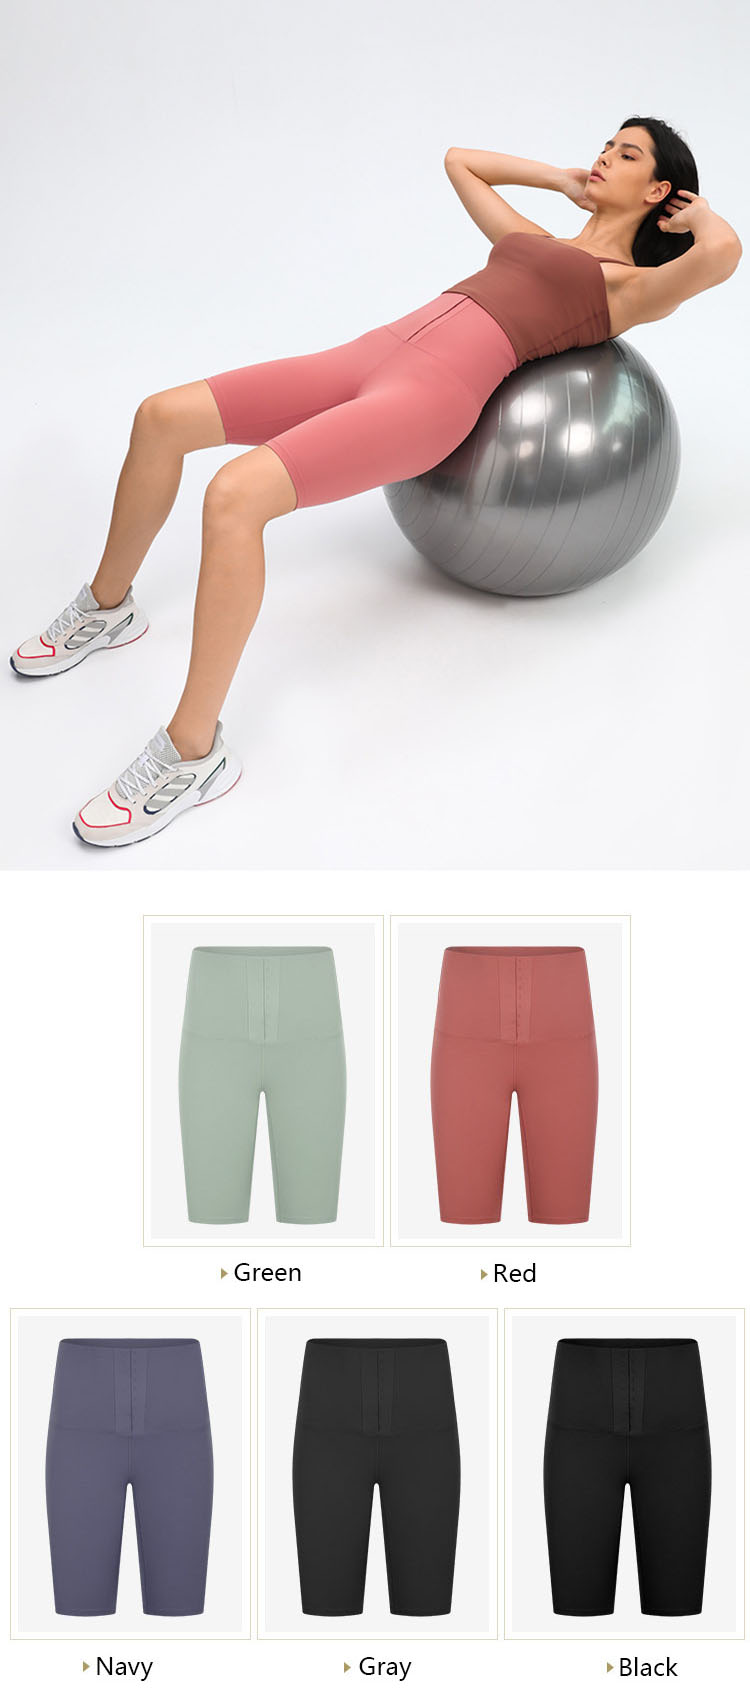 Concealed carry yoga pants has always given people a simple and fashionable feeling.